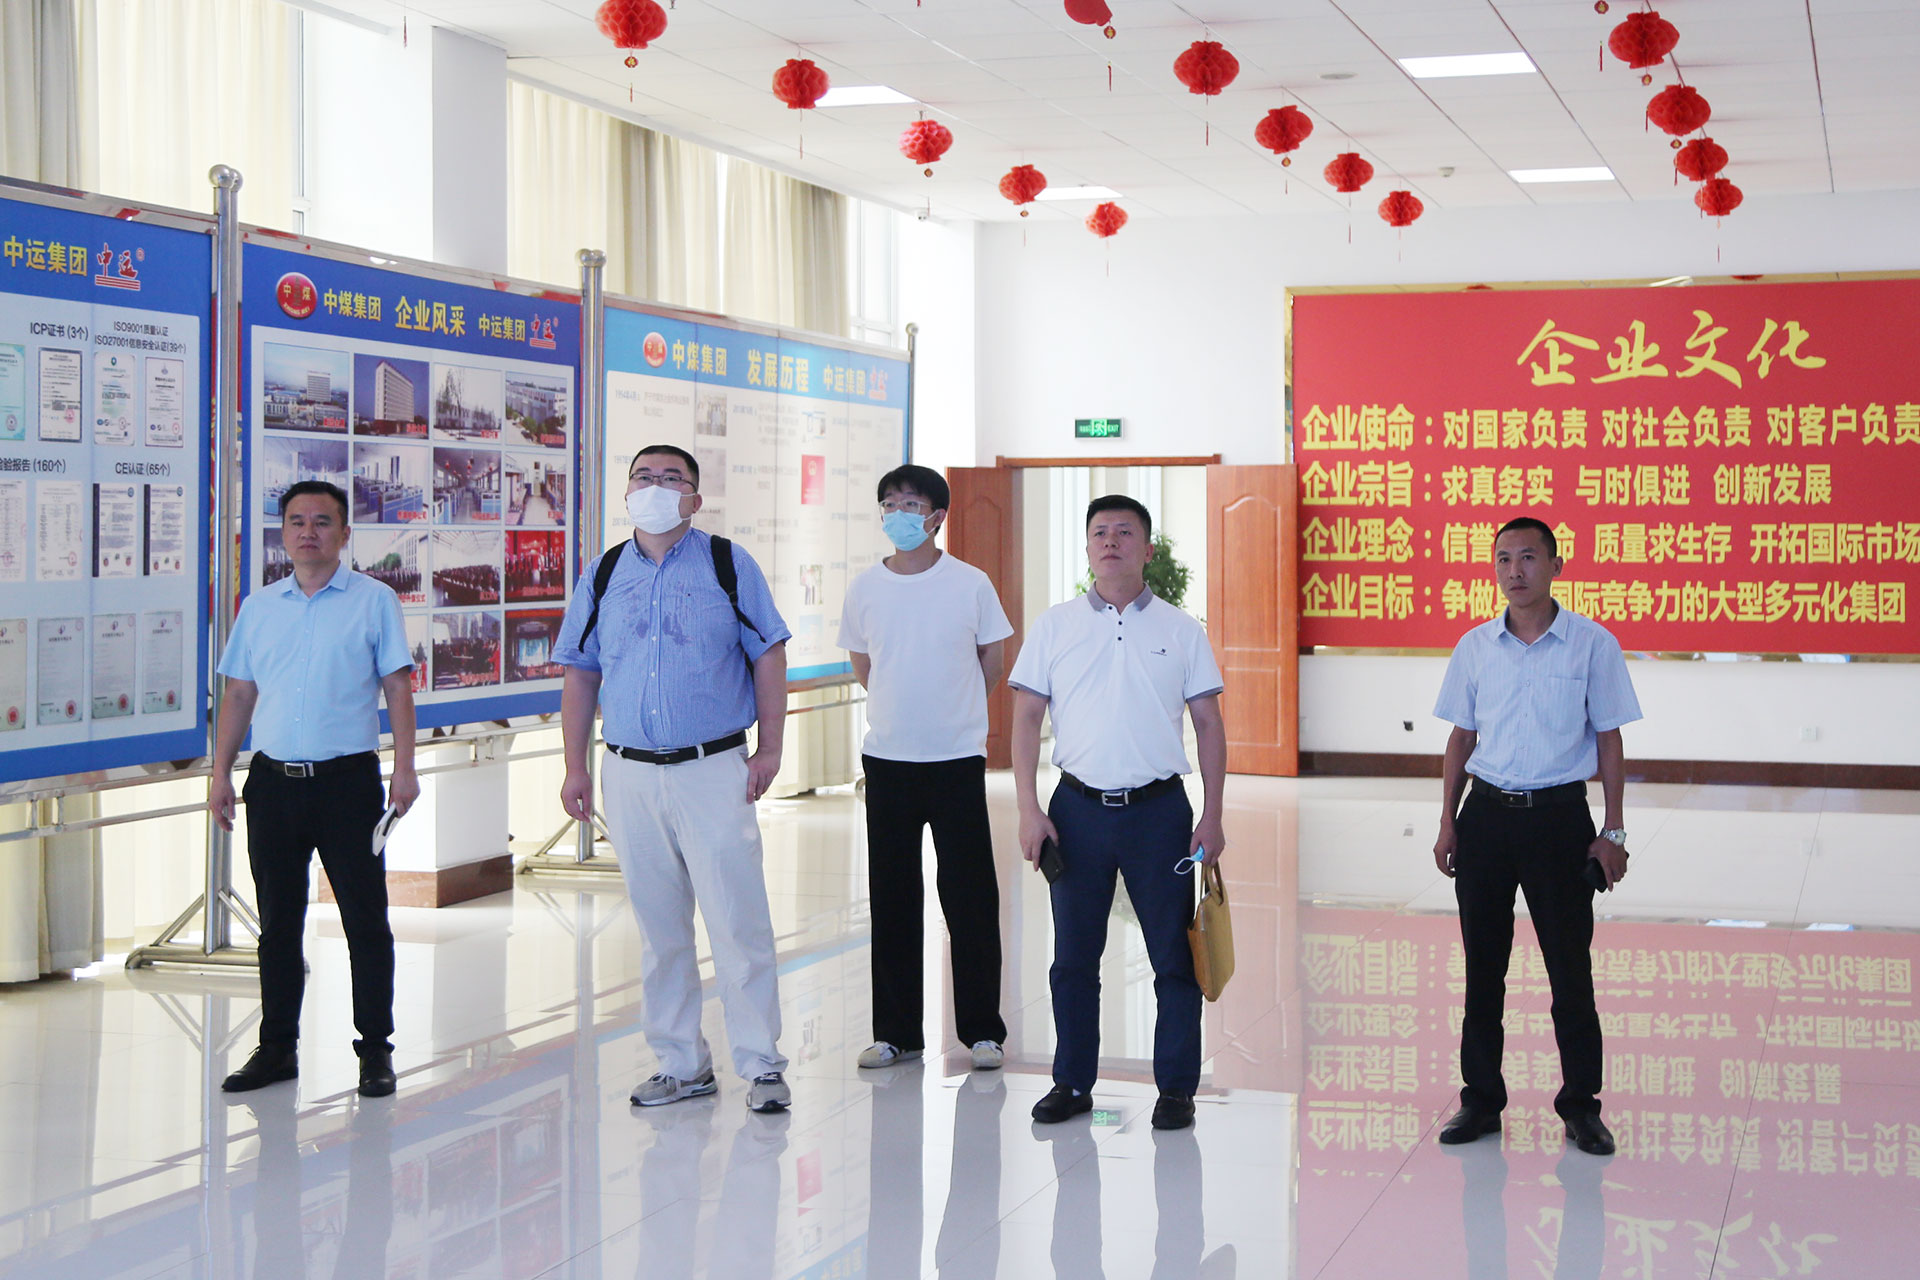 Warmly Welcome The Leaders Of Inspur Group To Visit China Coal Group For Inspection And Cooperation